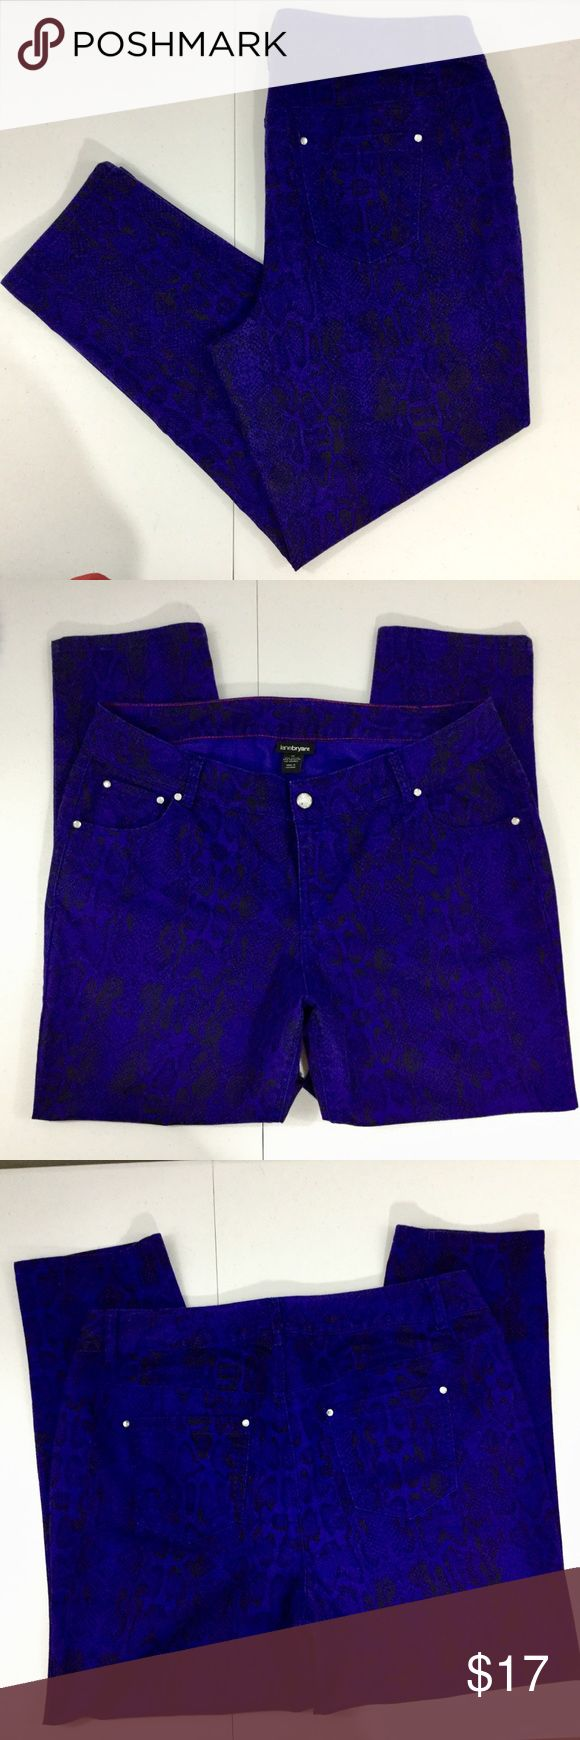 """Lane Bryant Women's Snake Print Jeans Purple Sz 20 Excellent used condition, no noted flaws. Women's size 20. Color purple with snake print. Classic 5-pocket design. Embellished crystal-like rivets and fly button. Zip fly. 64% cotton, 34% polyester, 2% spandex. Machine wash. Approx. laying flat measurements: waist 20"""", rise 11"""", inseam 30"""", bottom of legs 8"""" wide, length 42"""". Lane Bryant Jeans Straight Leg"""